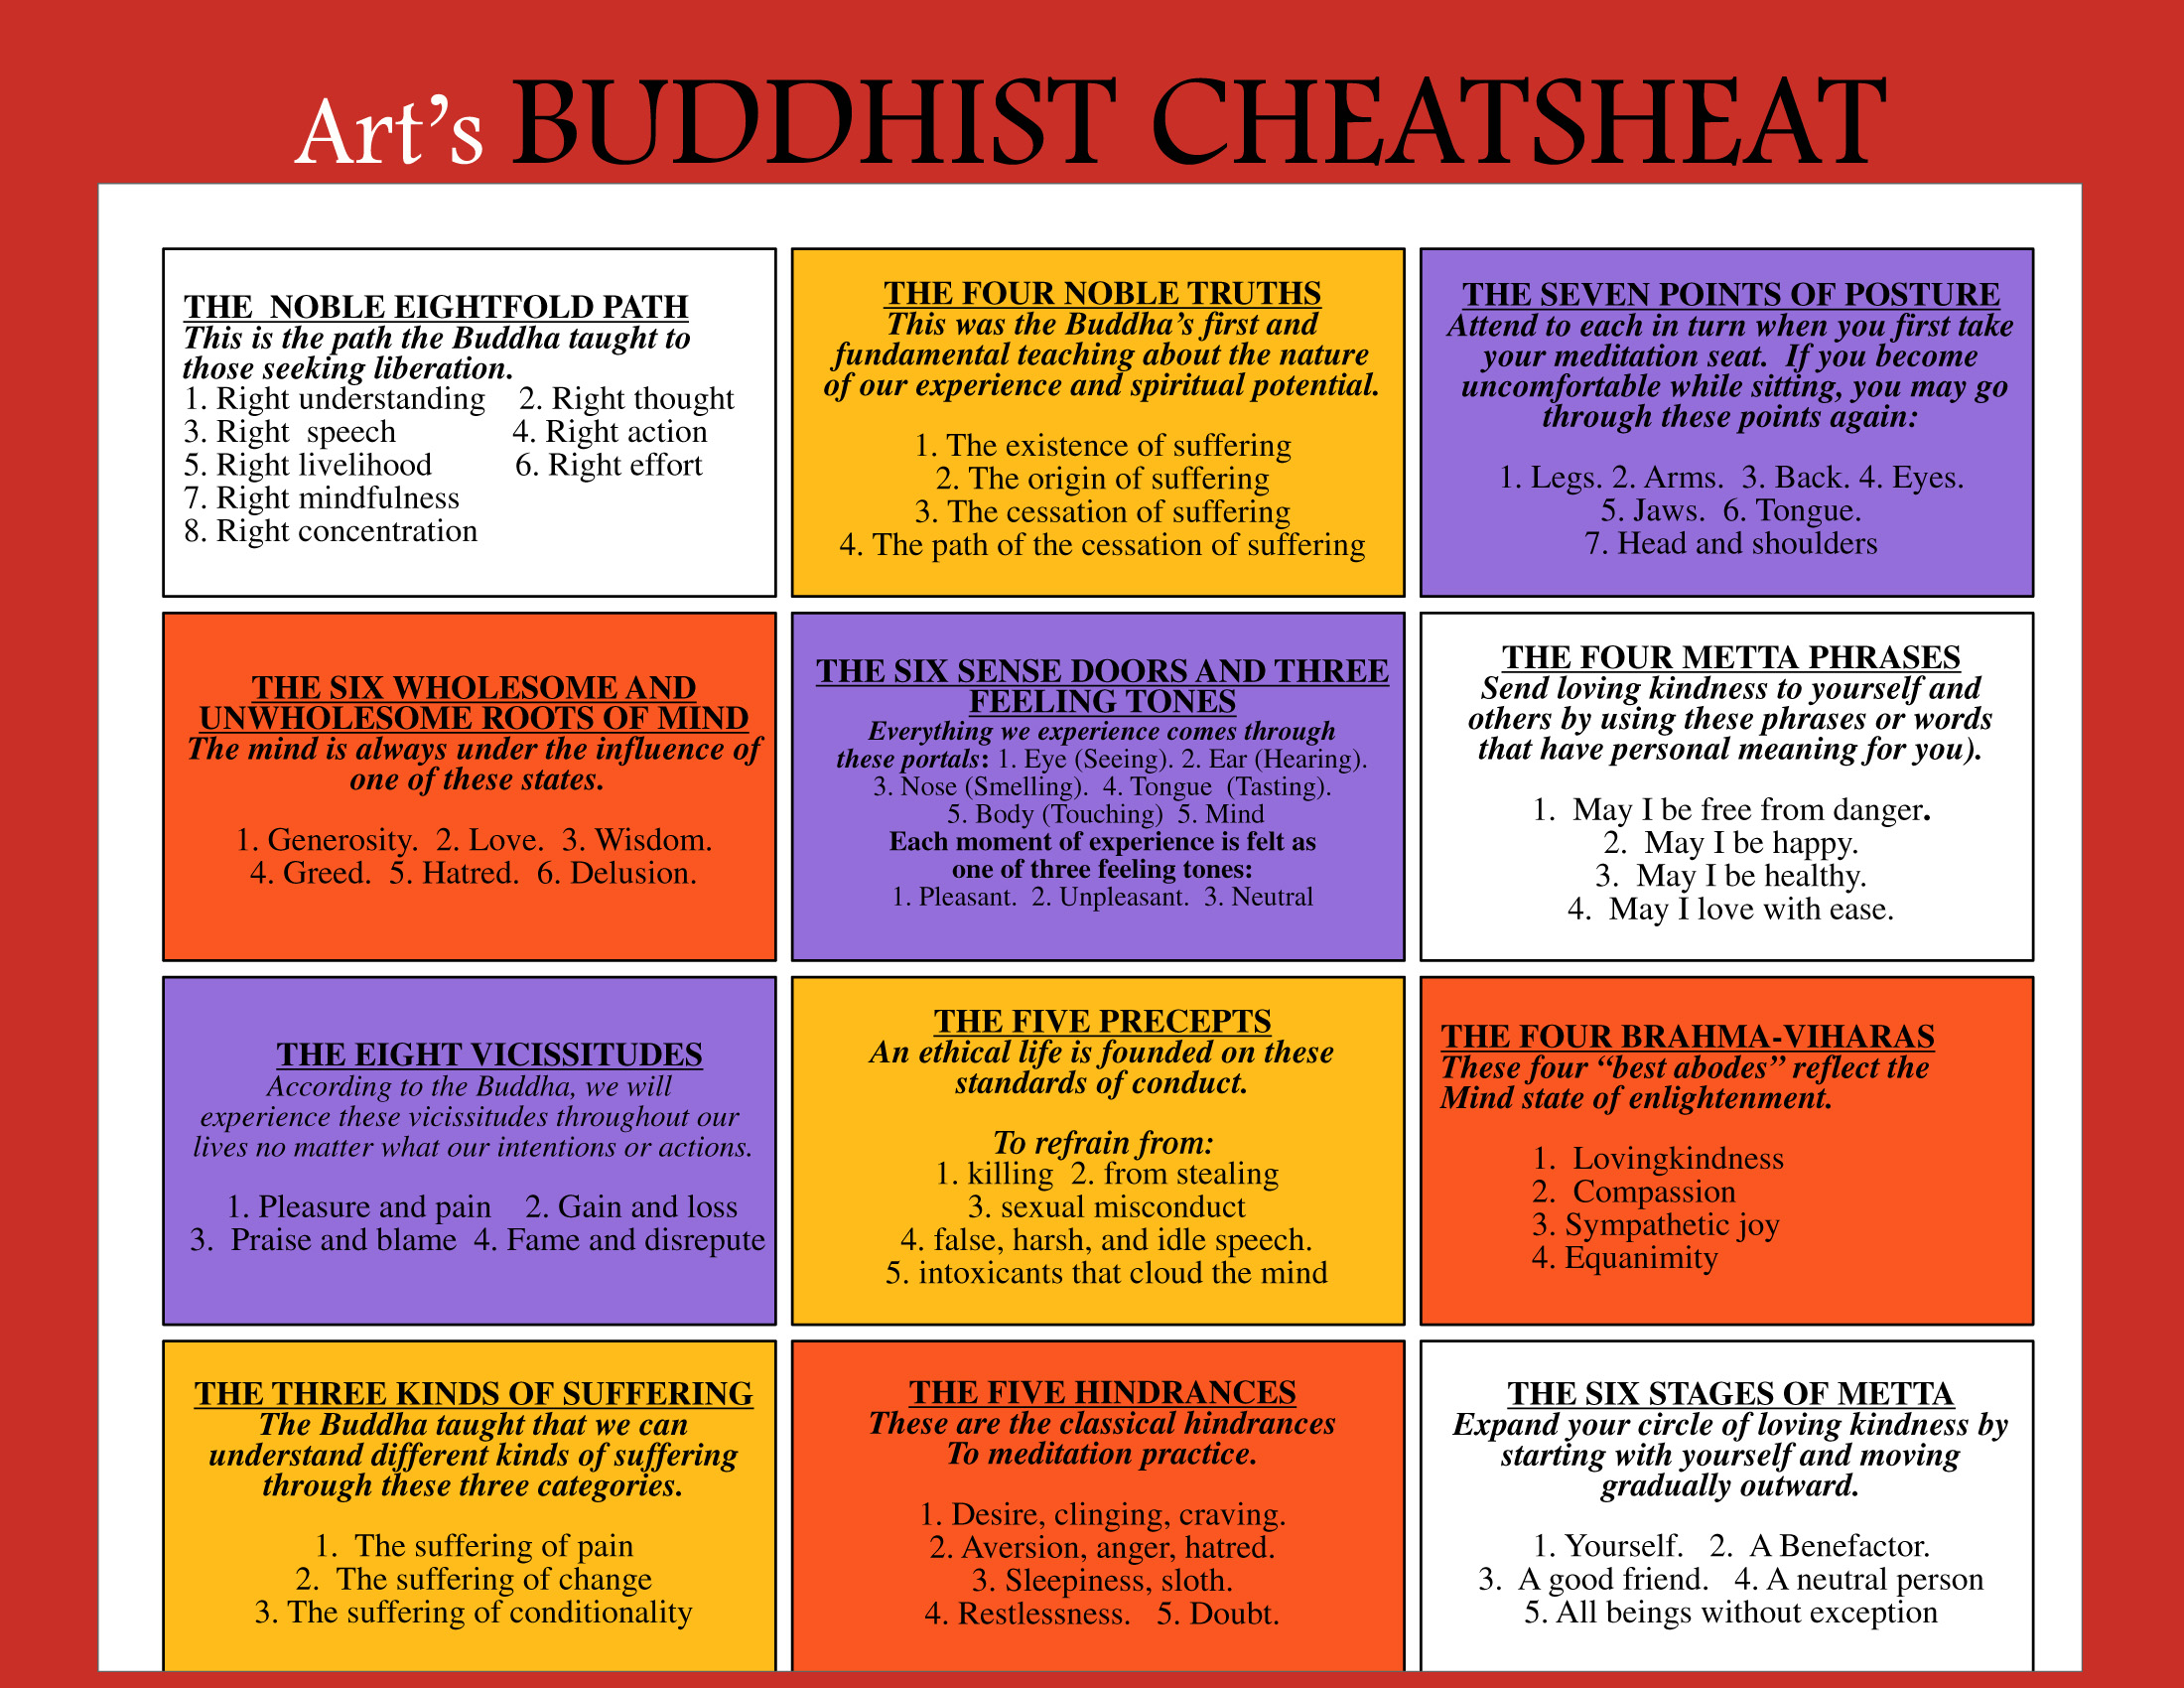 96 best images about Buddhism on Pinterest | Buddhists, Dalai lama ...